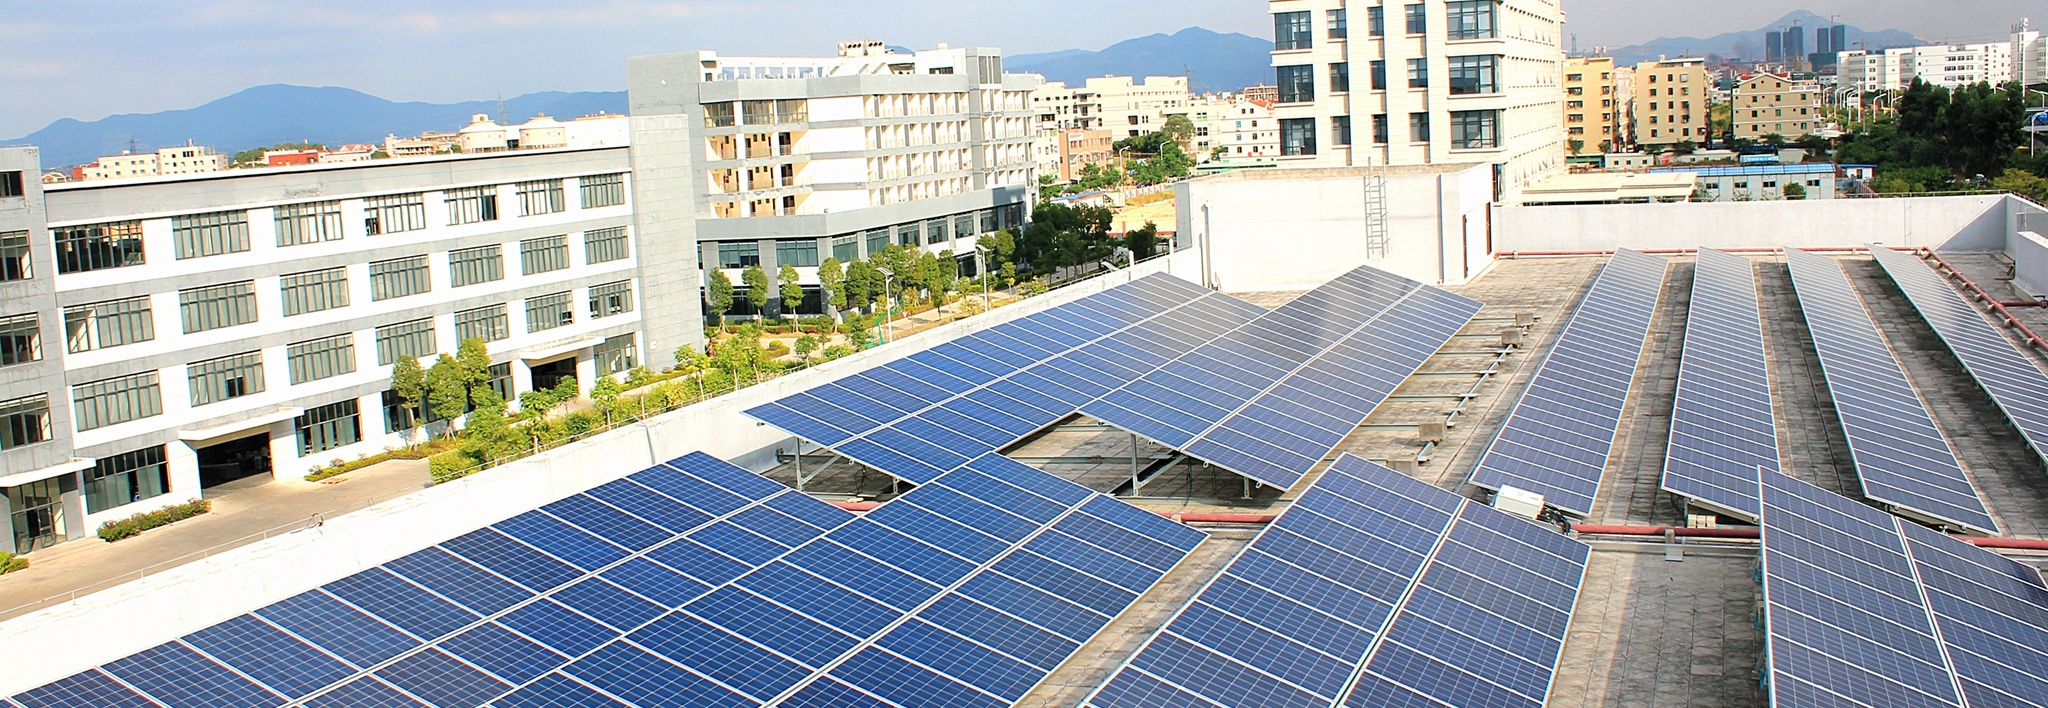 Clenergy Technology Park Solar Rooftop Project